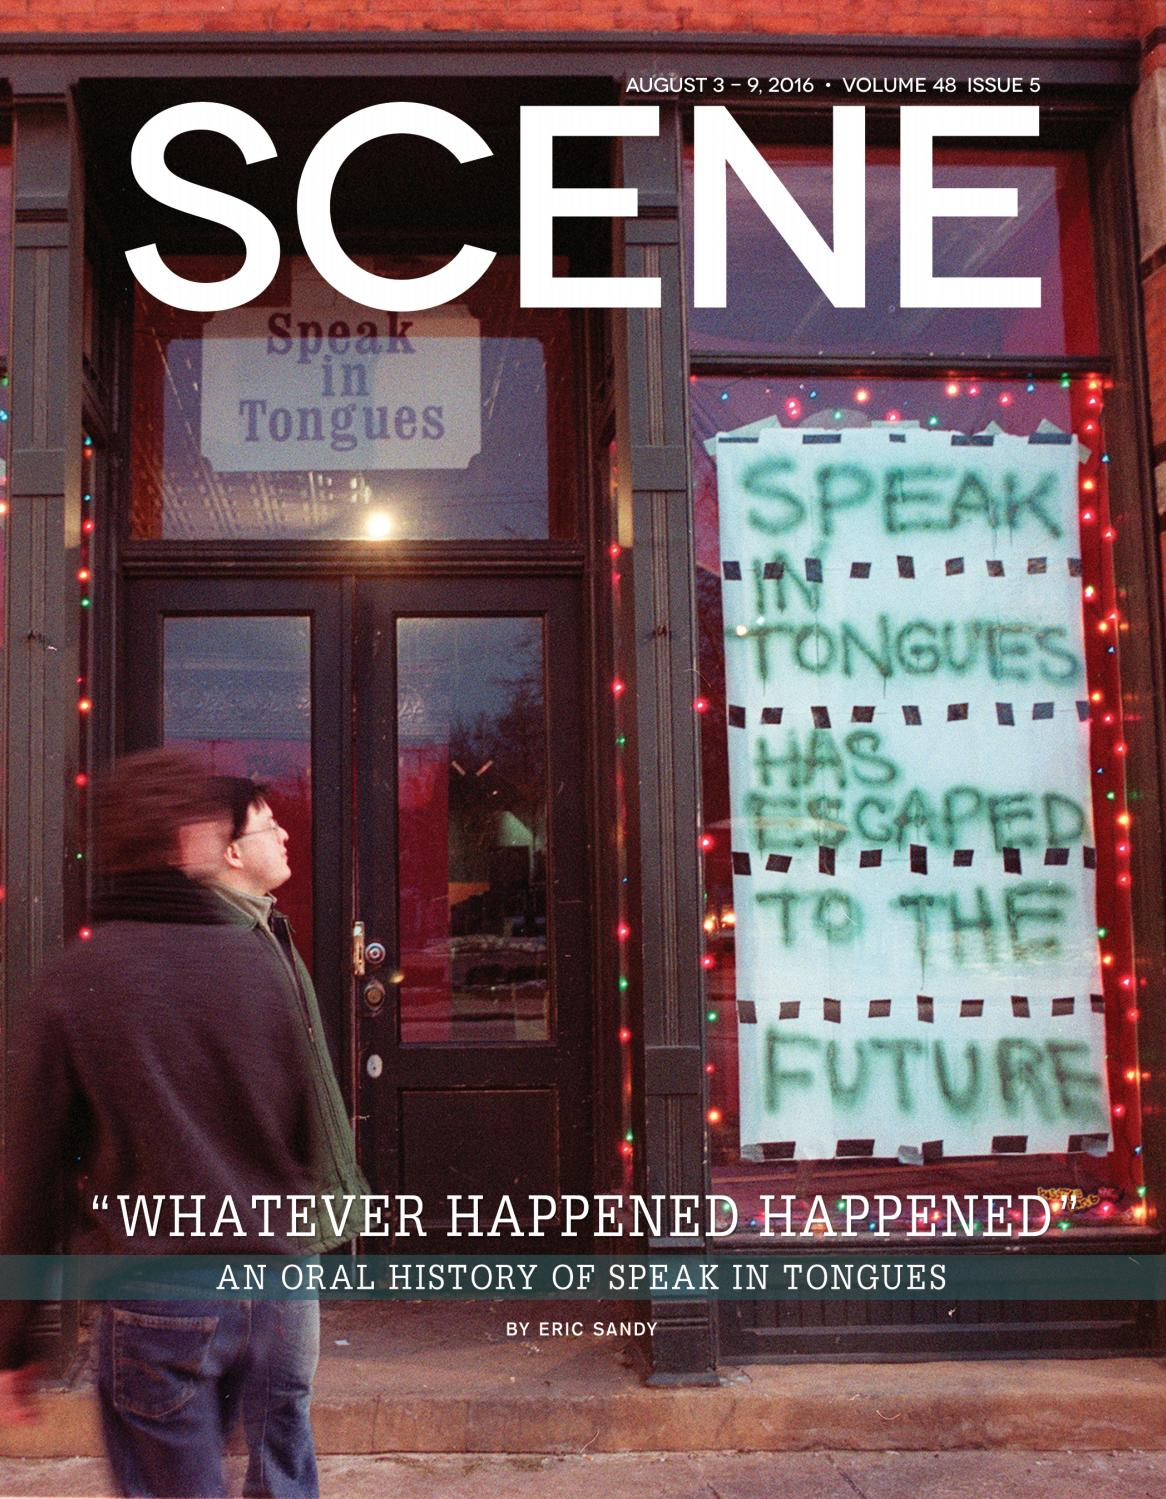 Scene august 3, 2016 by Euclid Media Group - issuu